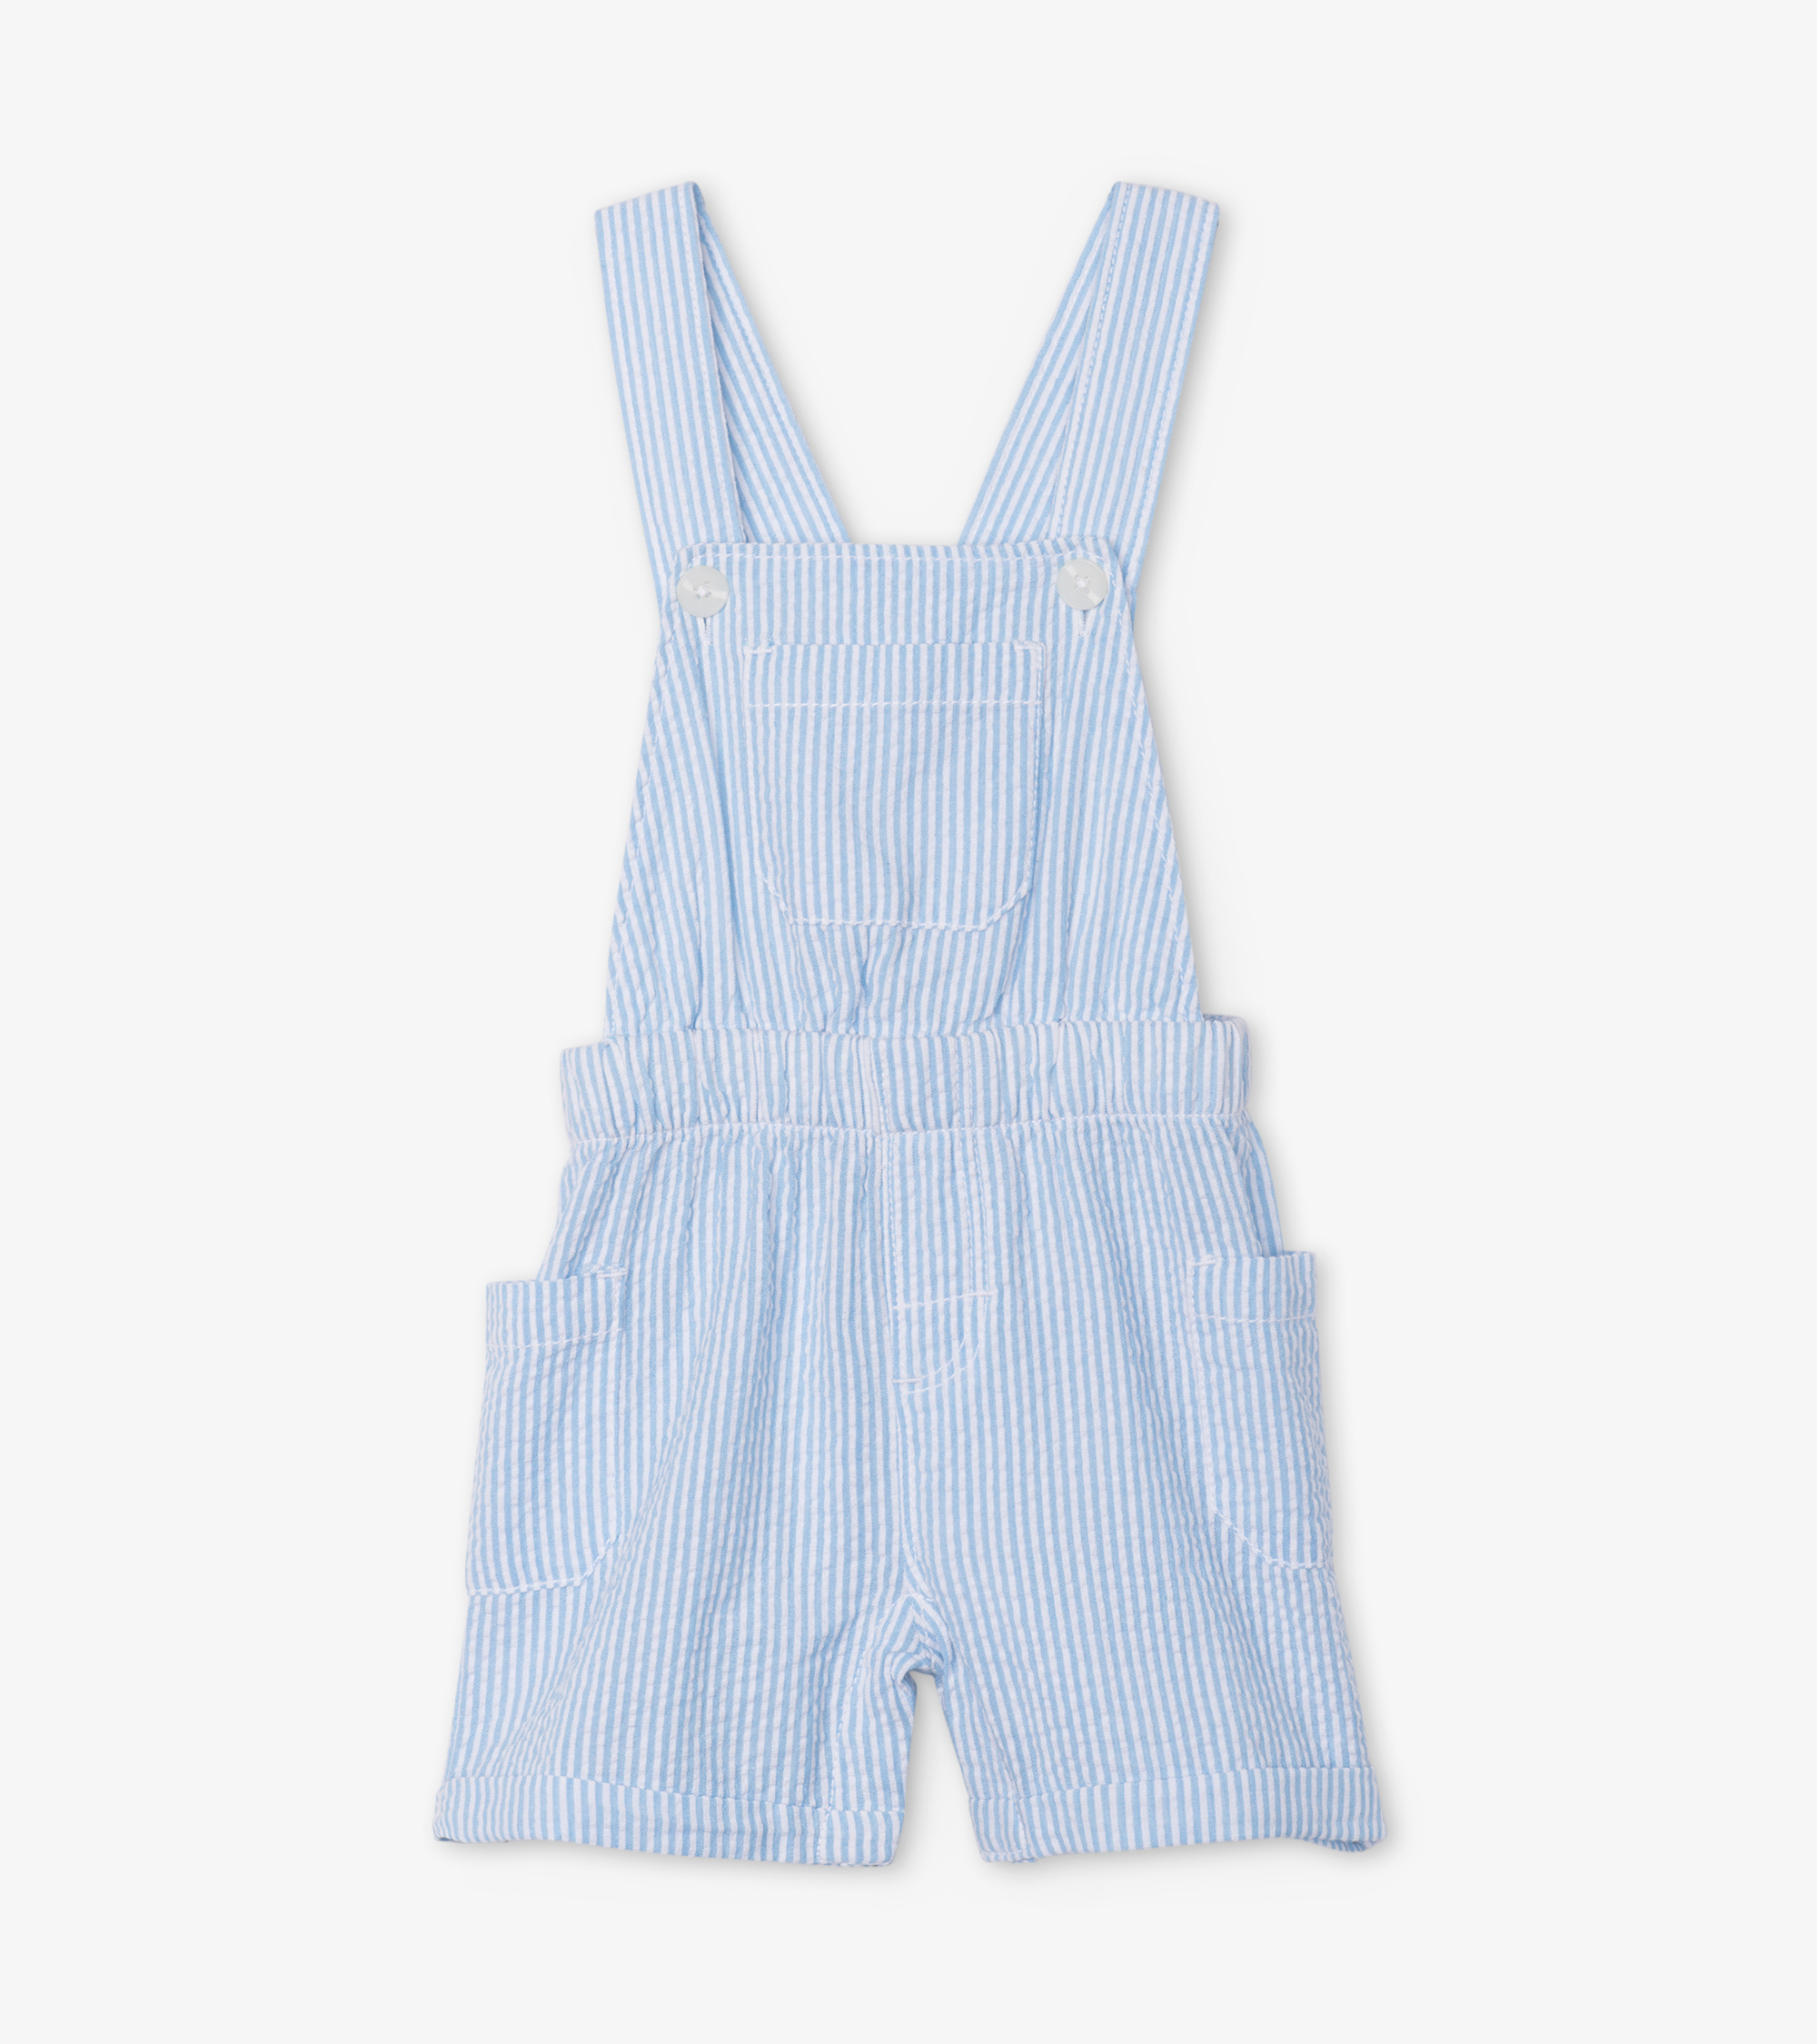 NOW £15  Hatley Stripe Baby dungaree shorts  Blue (was £22)